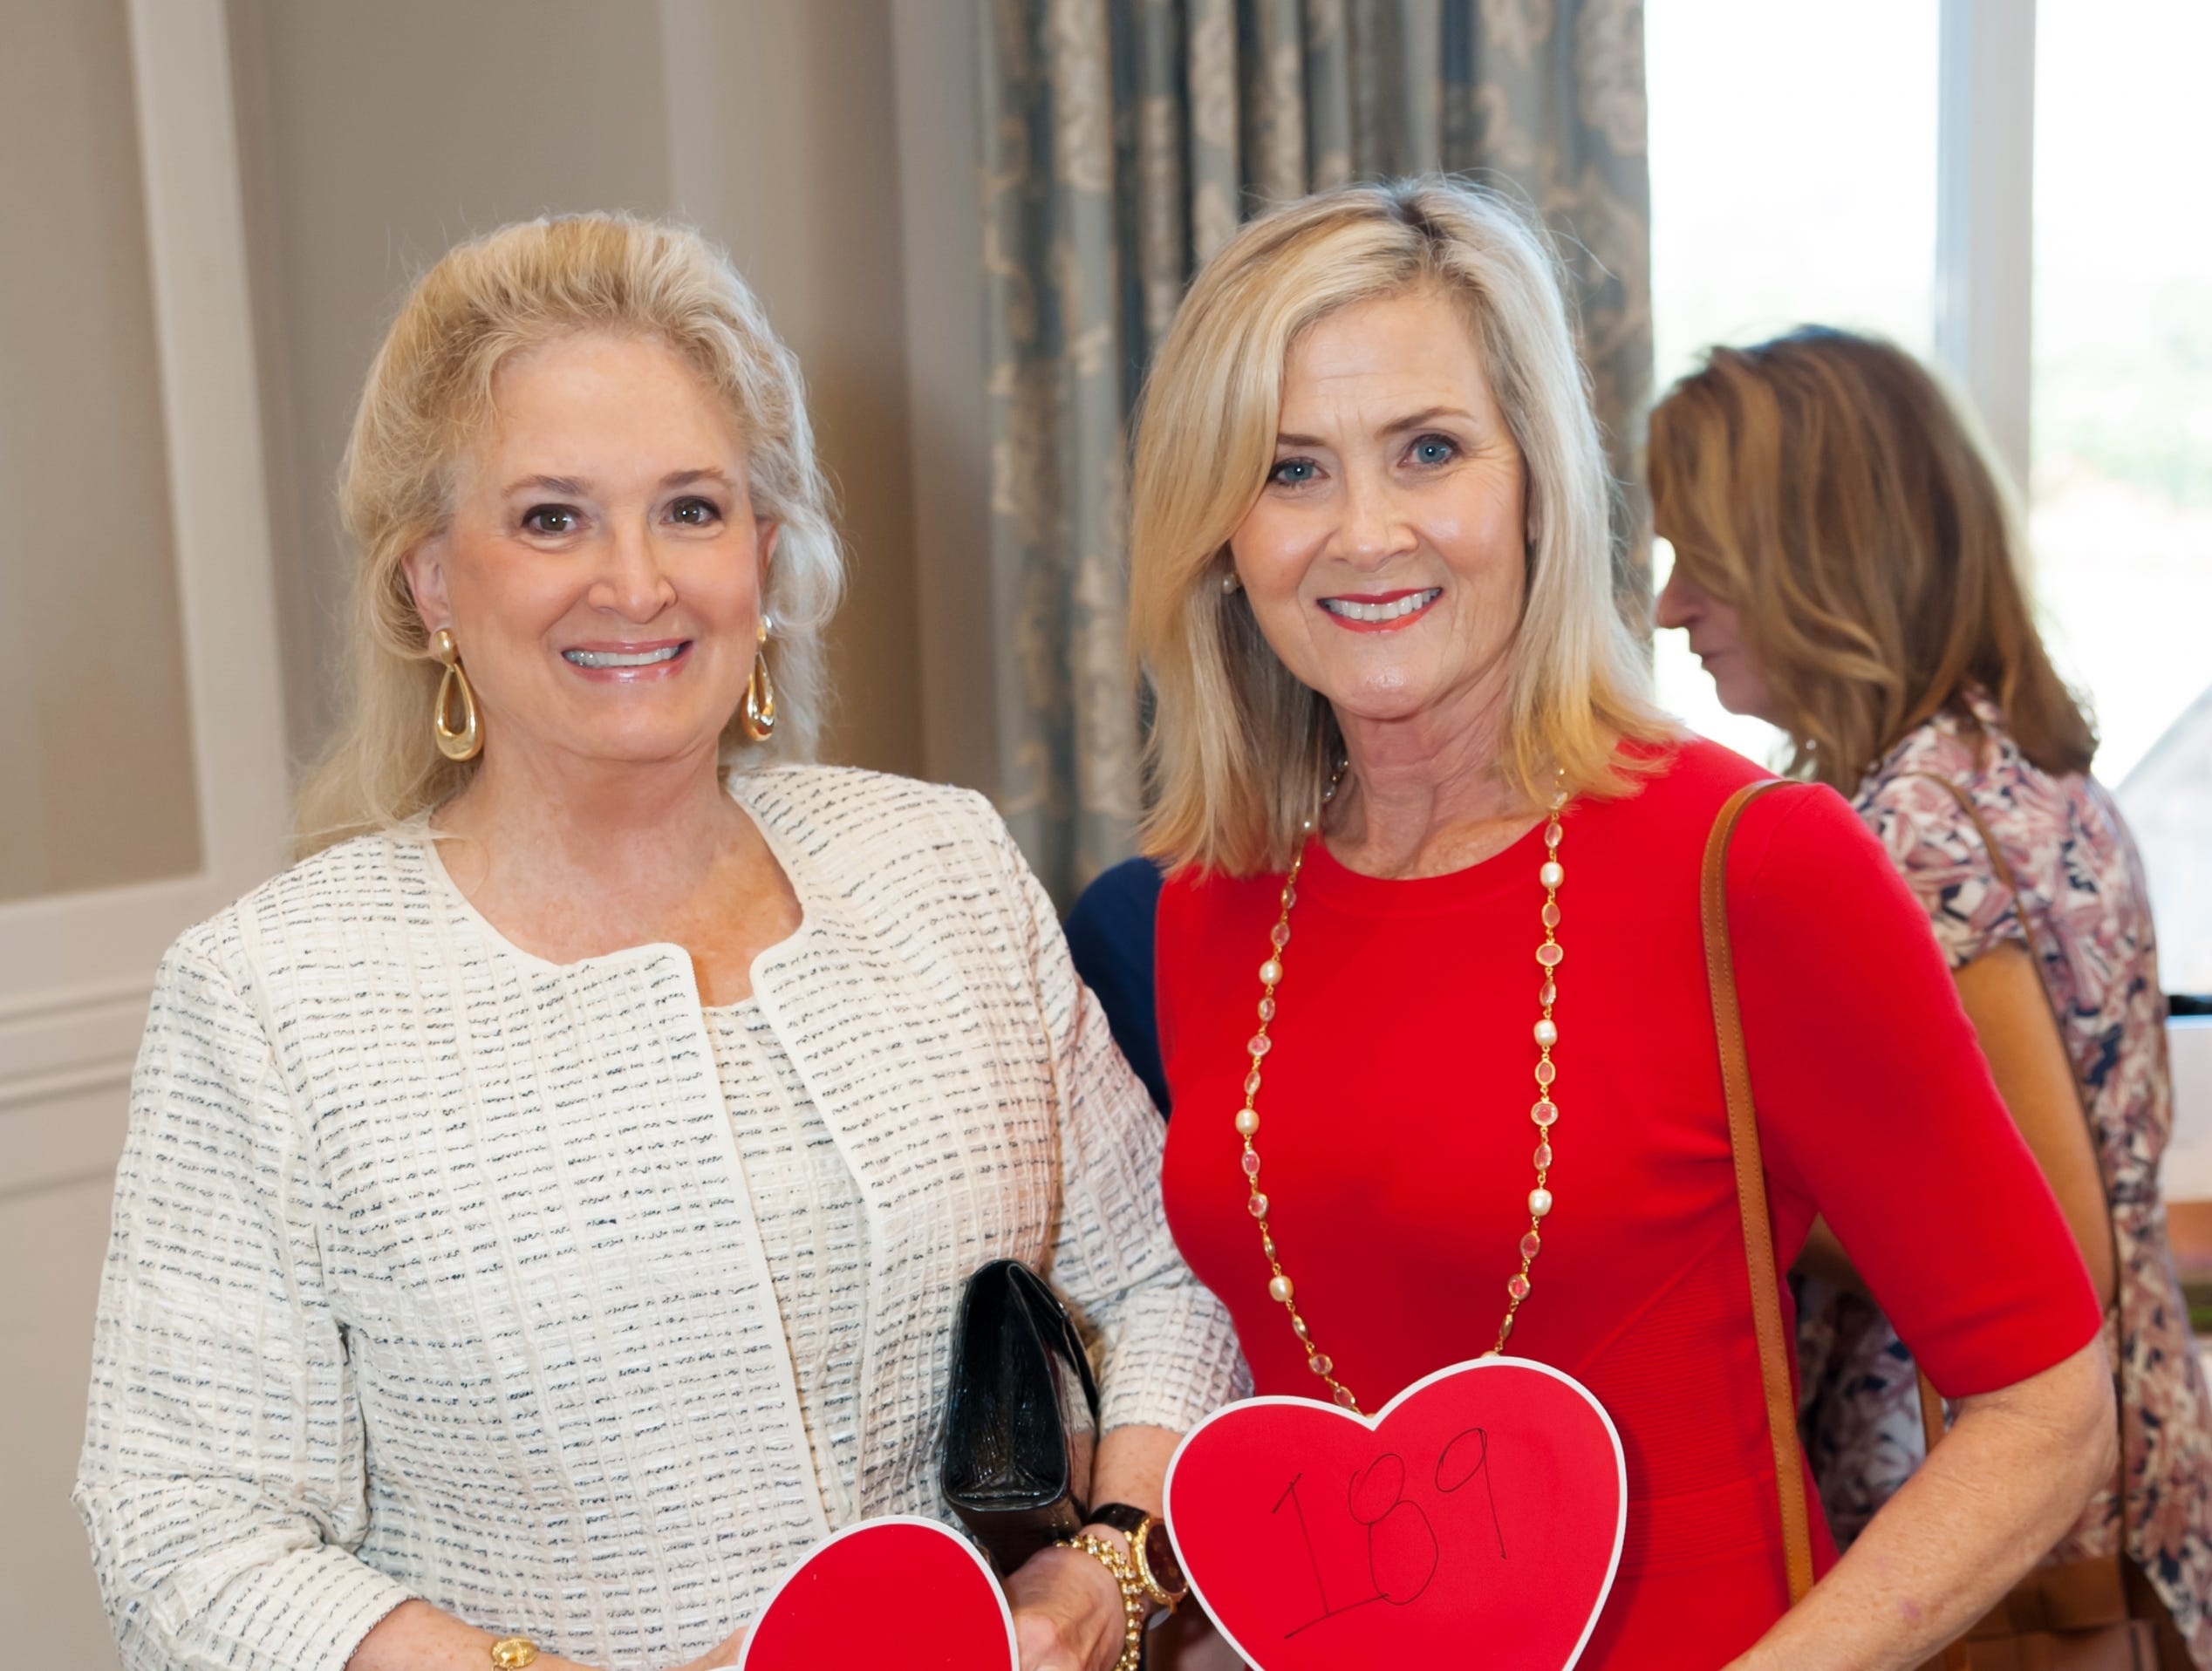 Kathryn Vecellio, left, and Wanda Doumar at the Golden Heart Luncheon in Palm Beach Gardens.